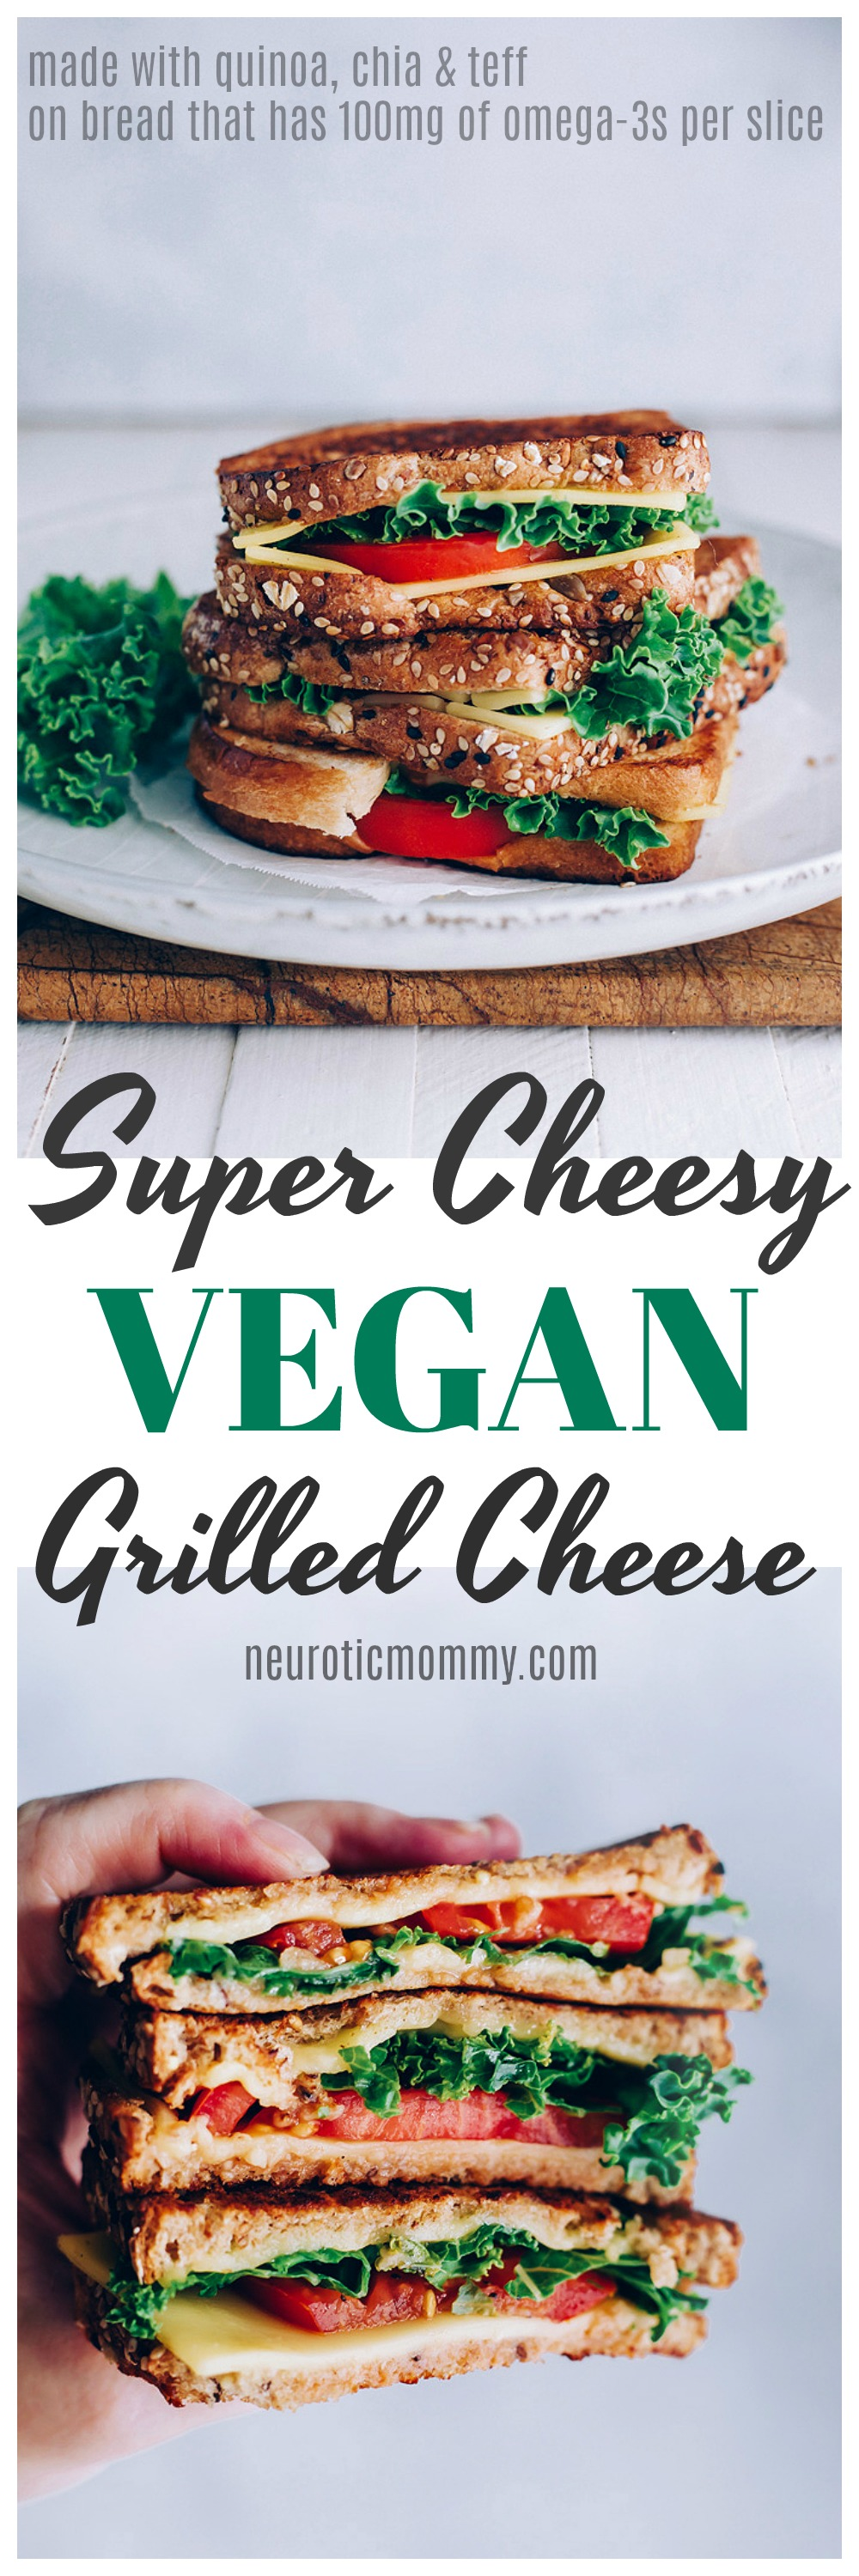 Super Cheesy Vegan Grilled Cheese - A gloriously gooey grilled cheese making this the ultimatesandwich at home the whole family will be sure to devour! NeuroticMommy.com #veganlunches #vegansandwiches